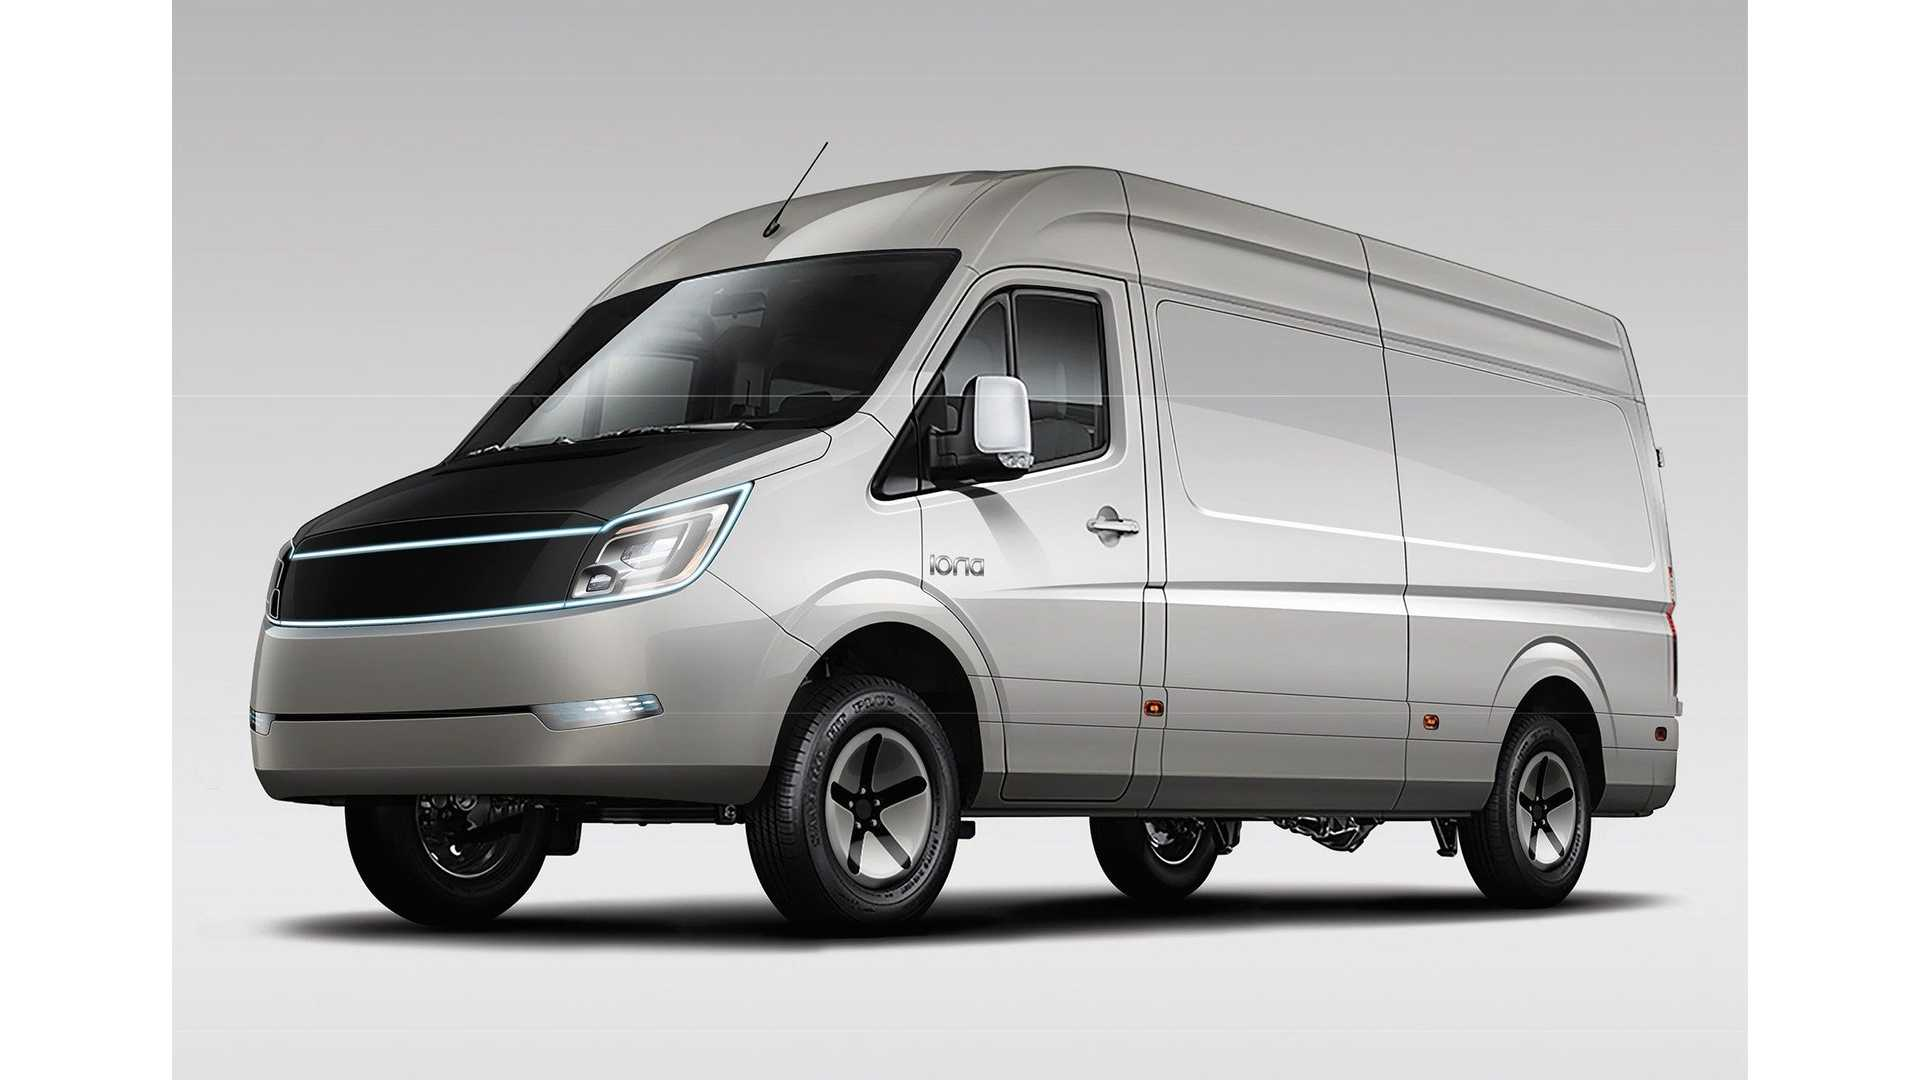 Meet IONA Electric Truck & Van: Equipped With Battery